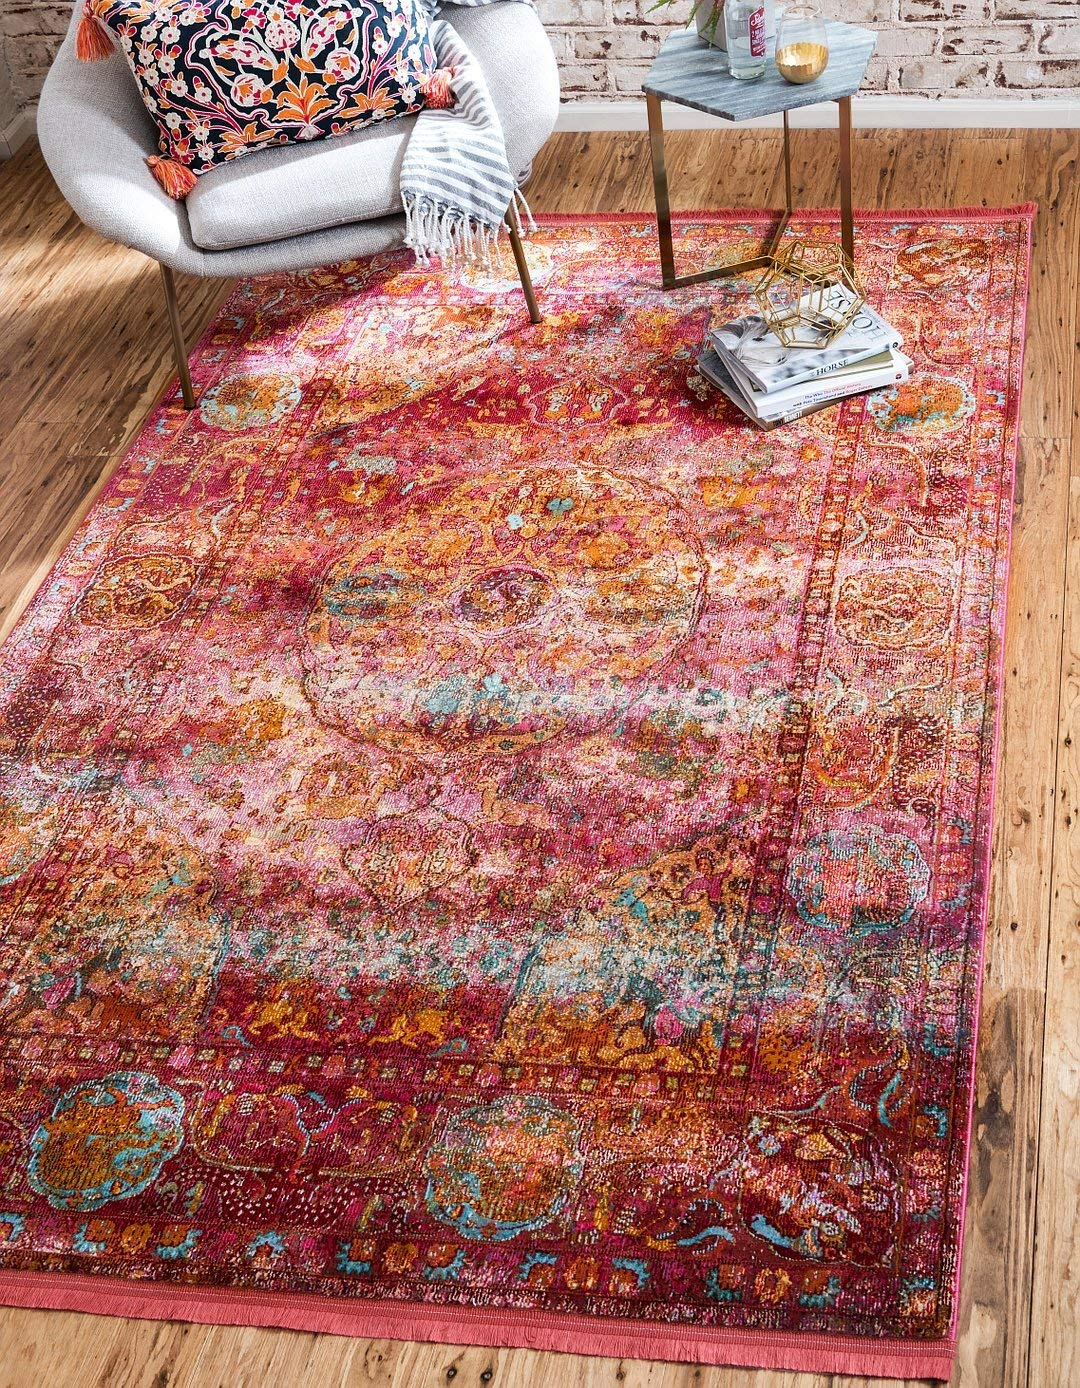 A2Z Rug Red 5' 5 x 8' Feet St. Tropez Collection Traditional and Modern Area Rugs and Carpet